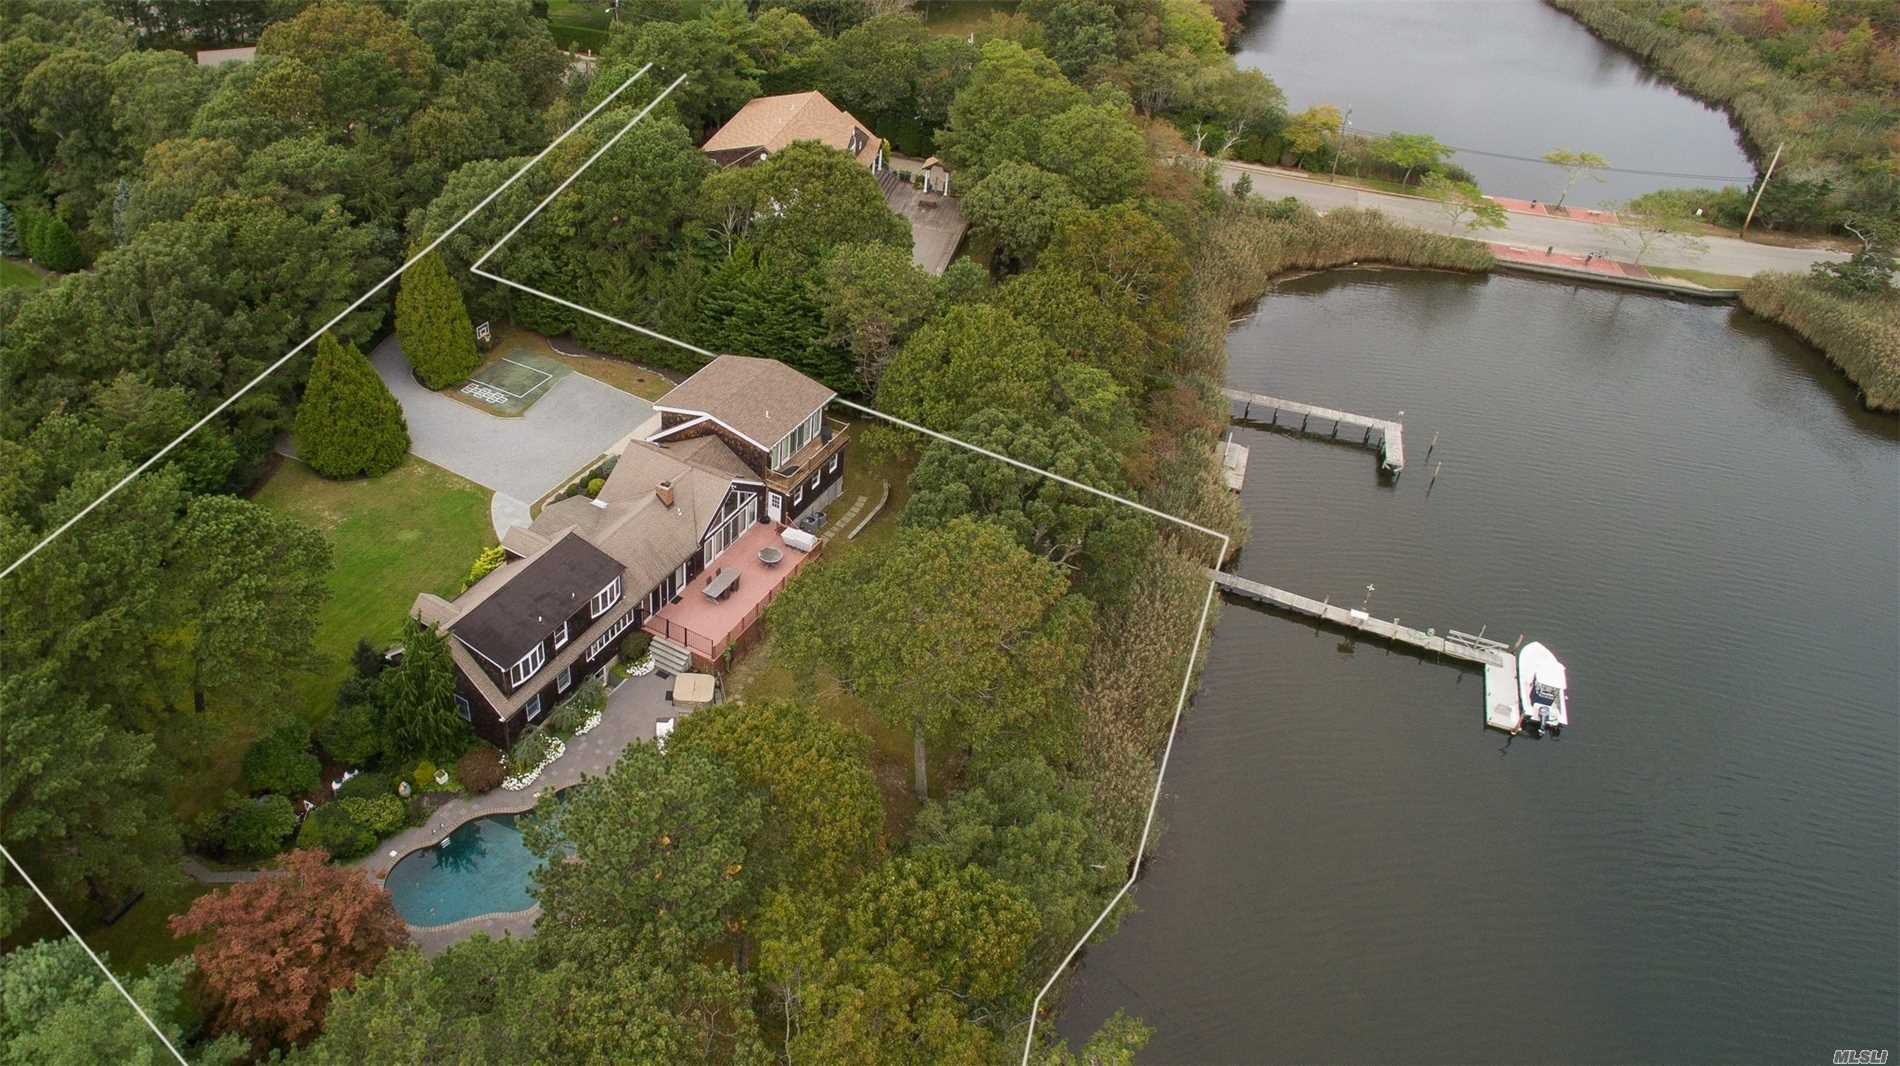 Spectacular Waterfront Location Not To Be Missed. This 3200 Sq.Ft Home Boasts Breathtaking Views W/Large Living/Dining Space Ideal For Entertaining. Home Offers Private Master Suite/Bath. 4 Bedrooms, Kitchen And Finished Basement. The Beautifully Landscaped Grounds Provides Ultimate Privacy W/Htd Gunite Pool, Hot Tub And Private Dock. A Boater's Dream! Walking Distance To Town. A Must See!